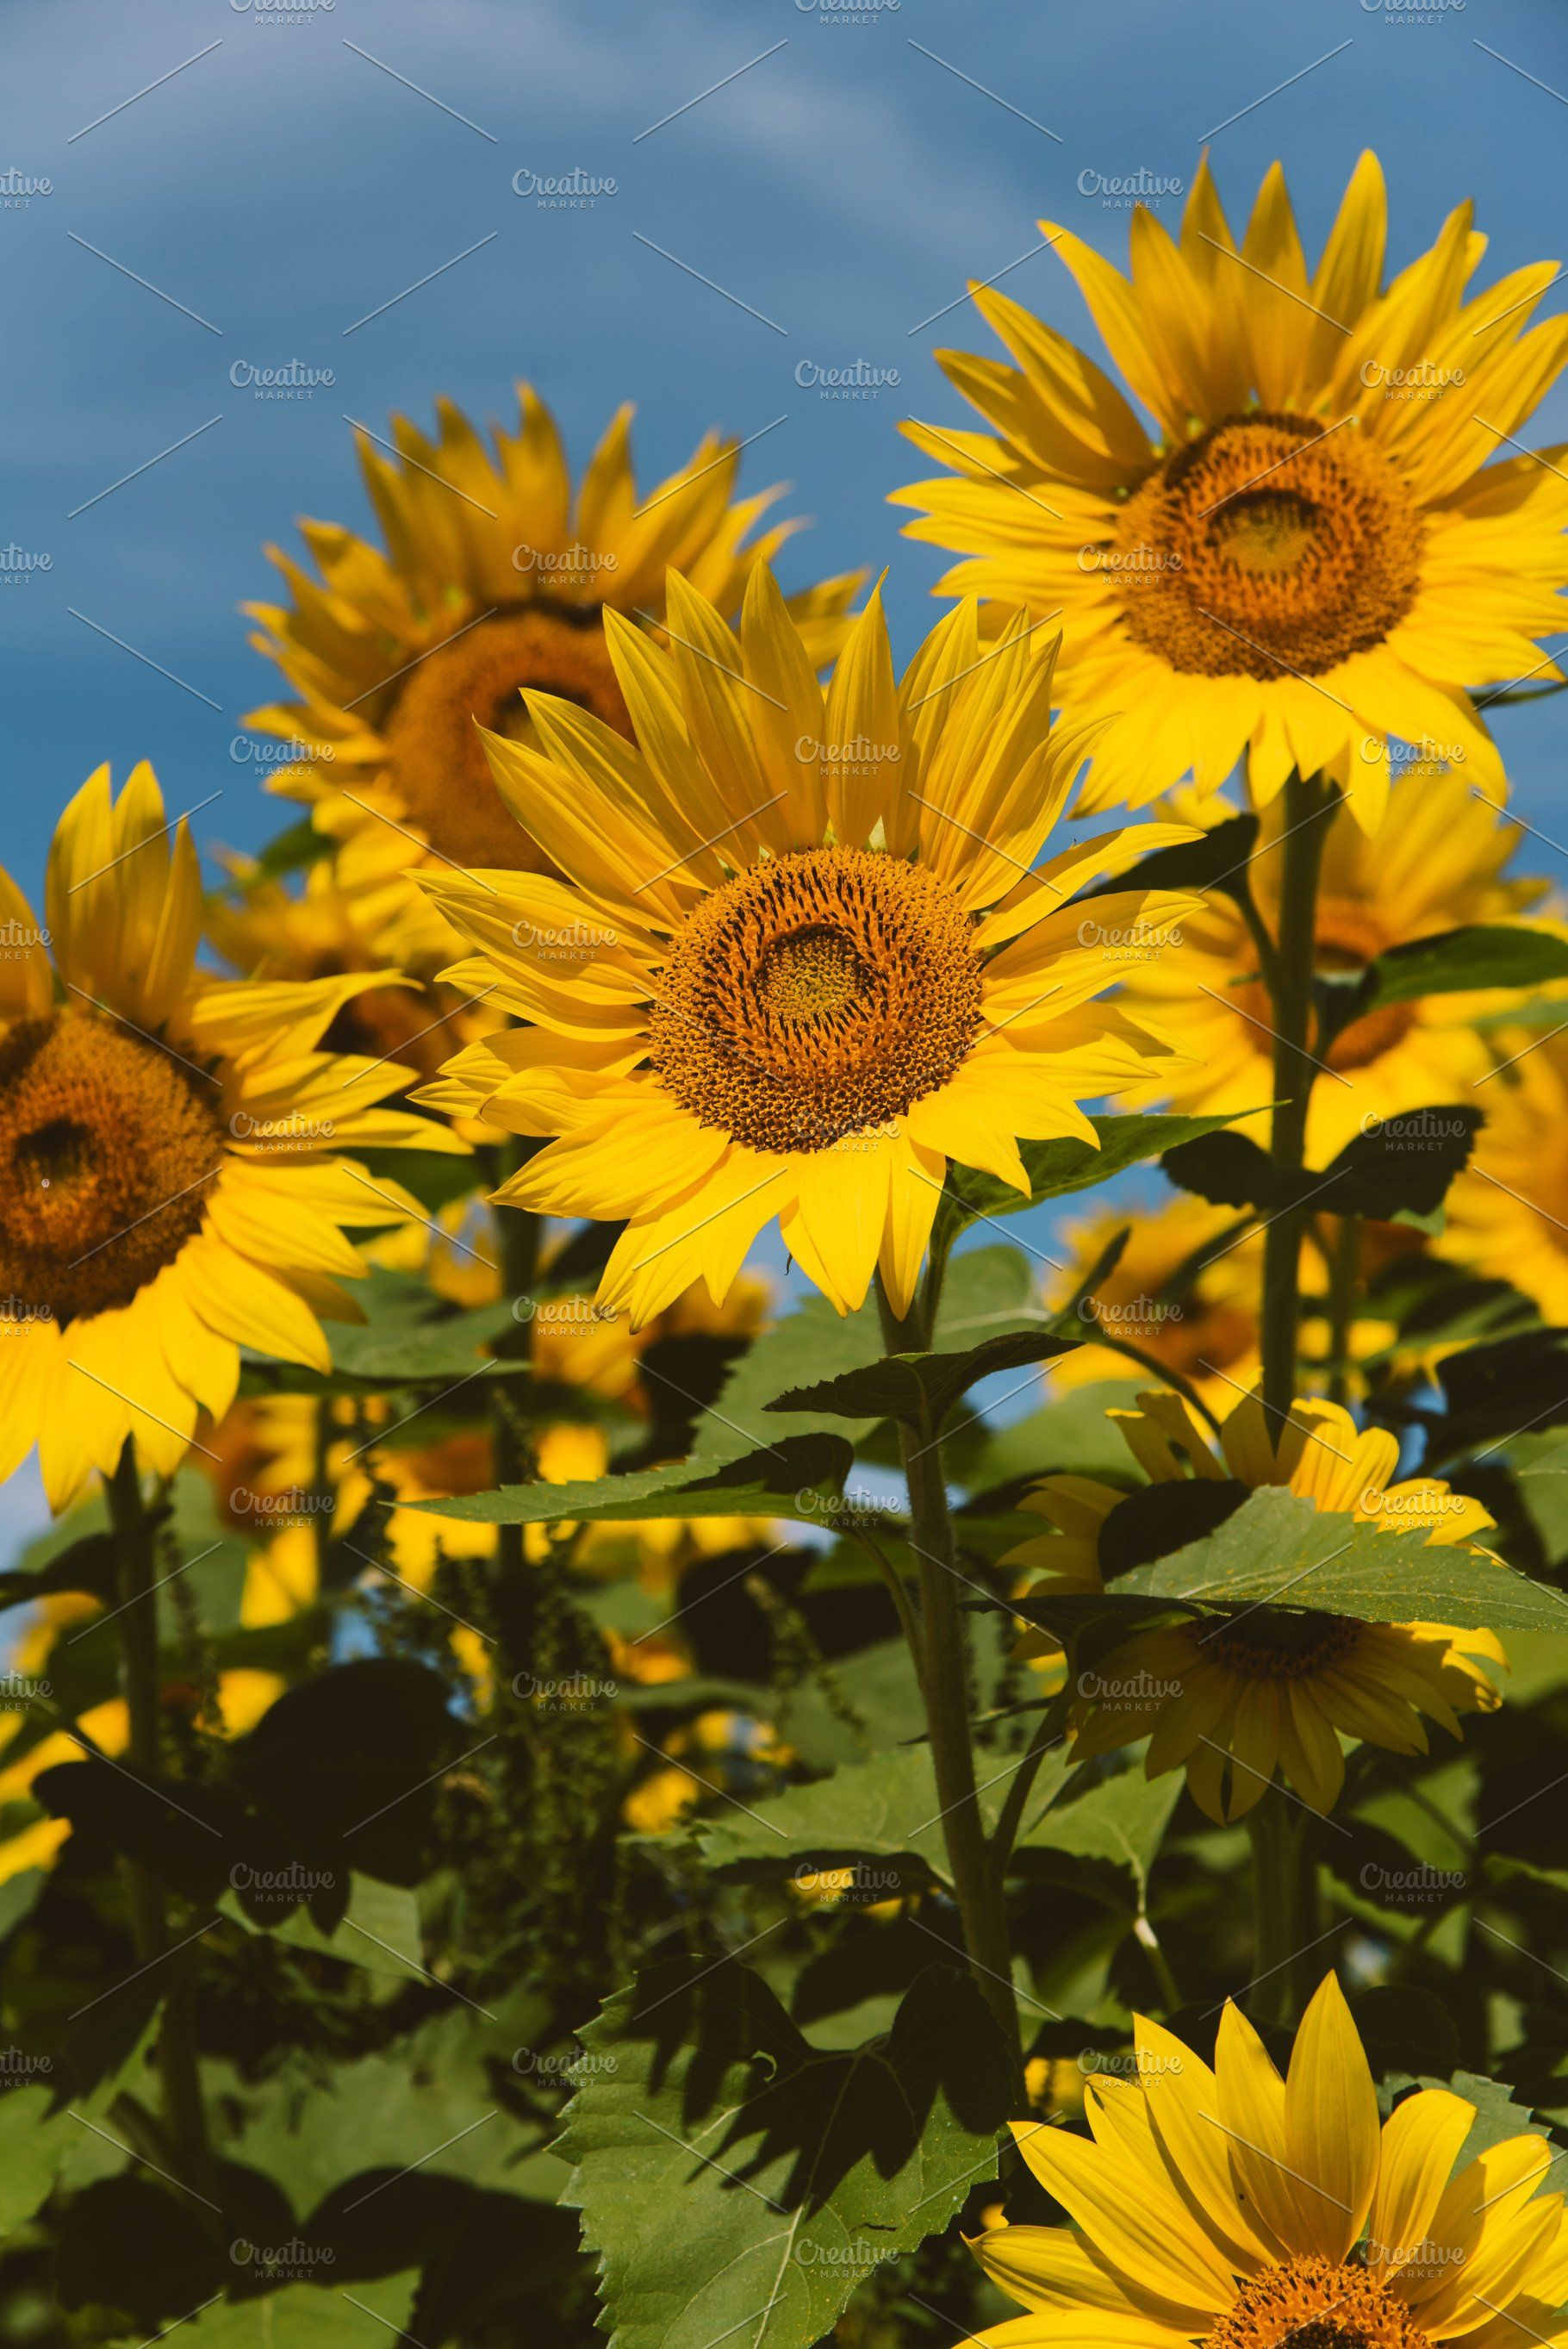 Sunflower Field In Full Bloom Sunflower Fields Nature Photos Nature Posters